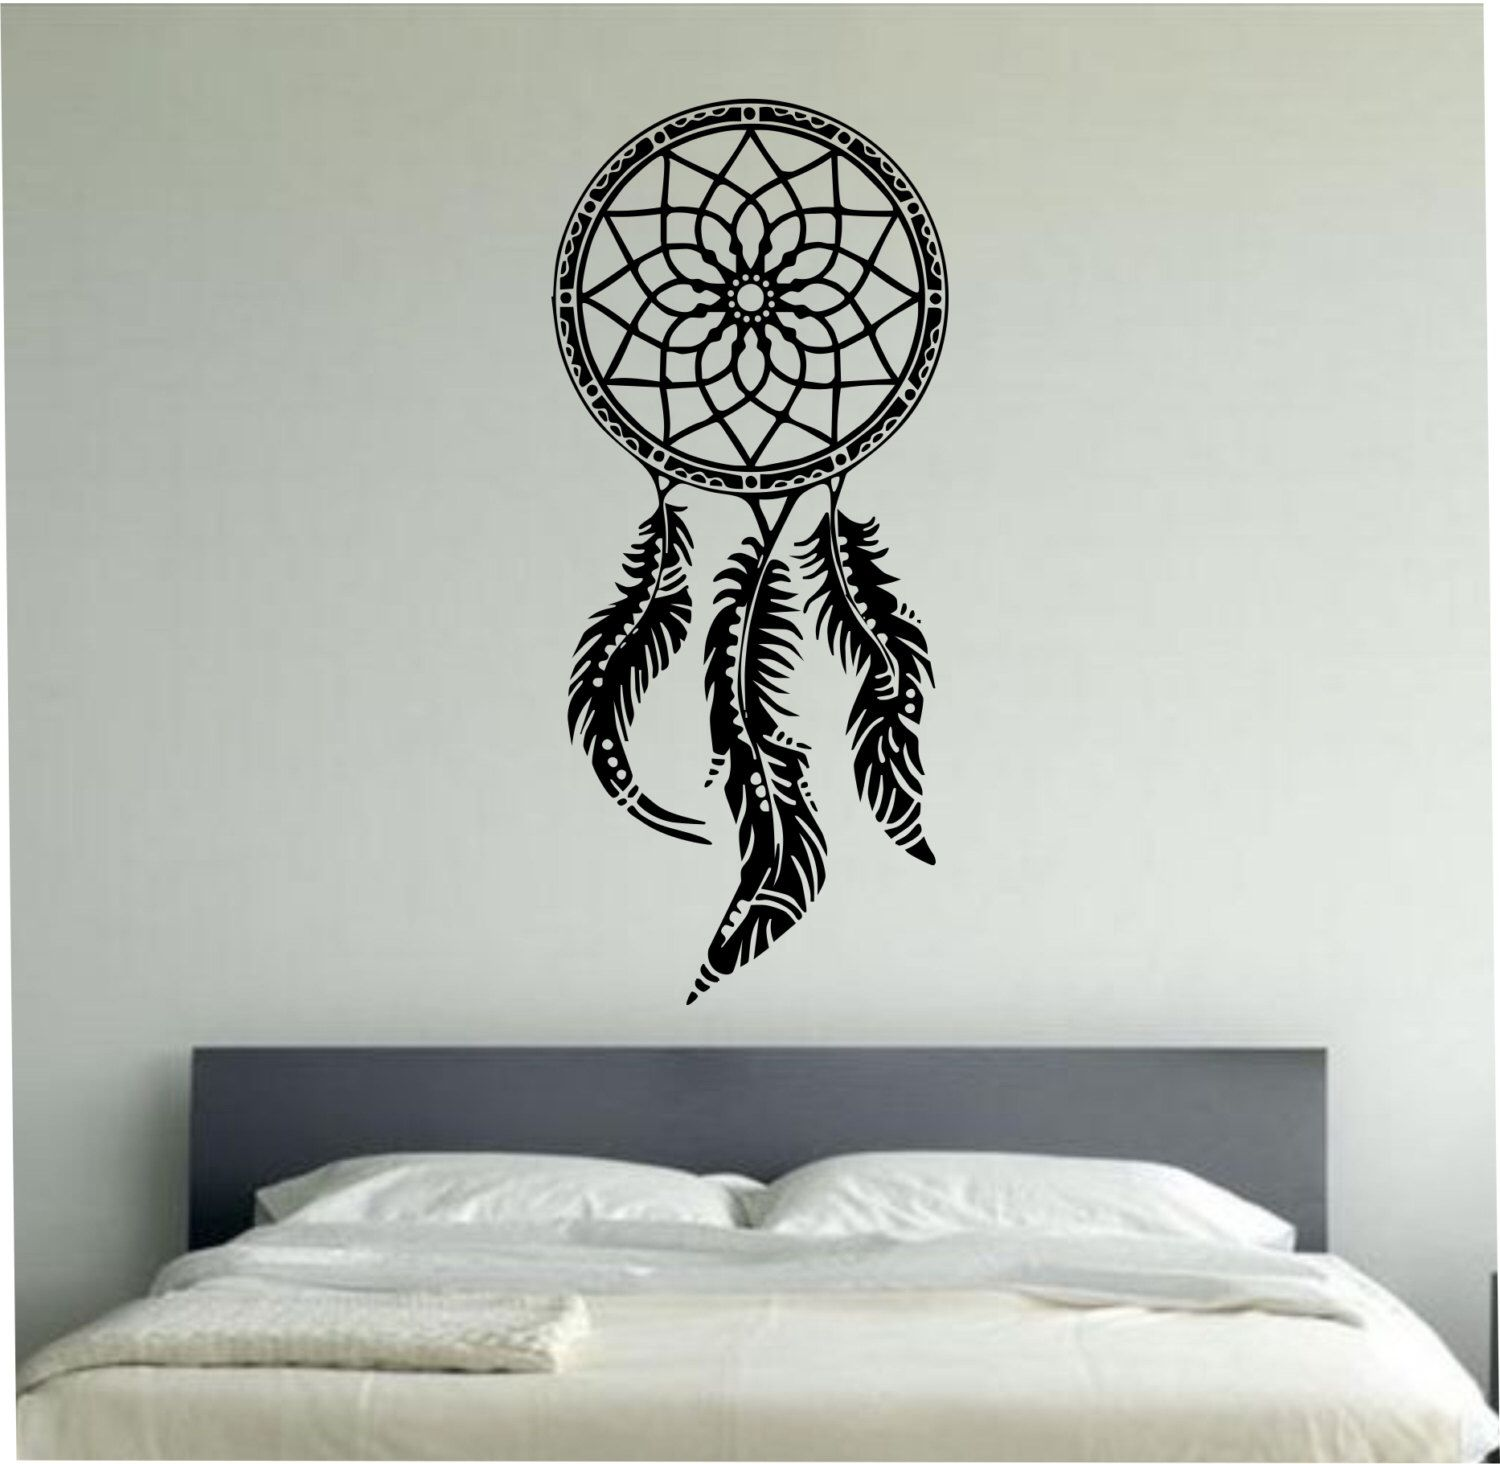 Vinyl Wall Decal Dream Catcher Wall Decal Sticker Vinyl Art Decor Bedroom